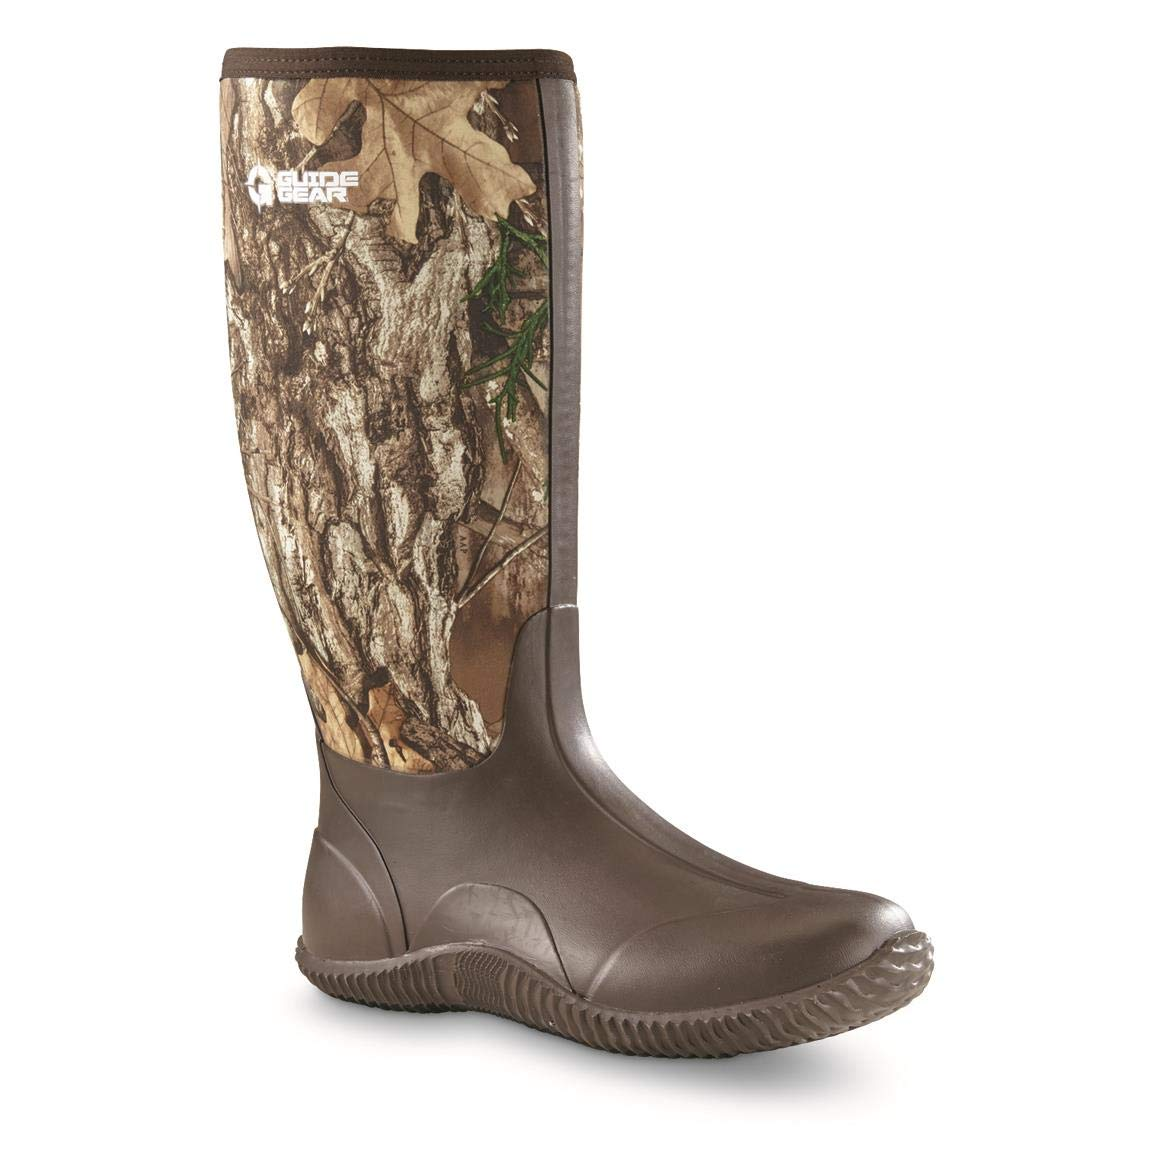 Guide Gear Men's High Camo Bogger Rubber Boots, Realtree Edge, 11D (Medium) by Guide Gear